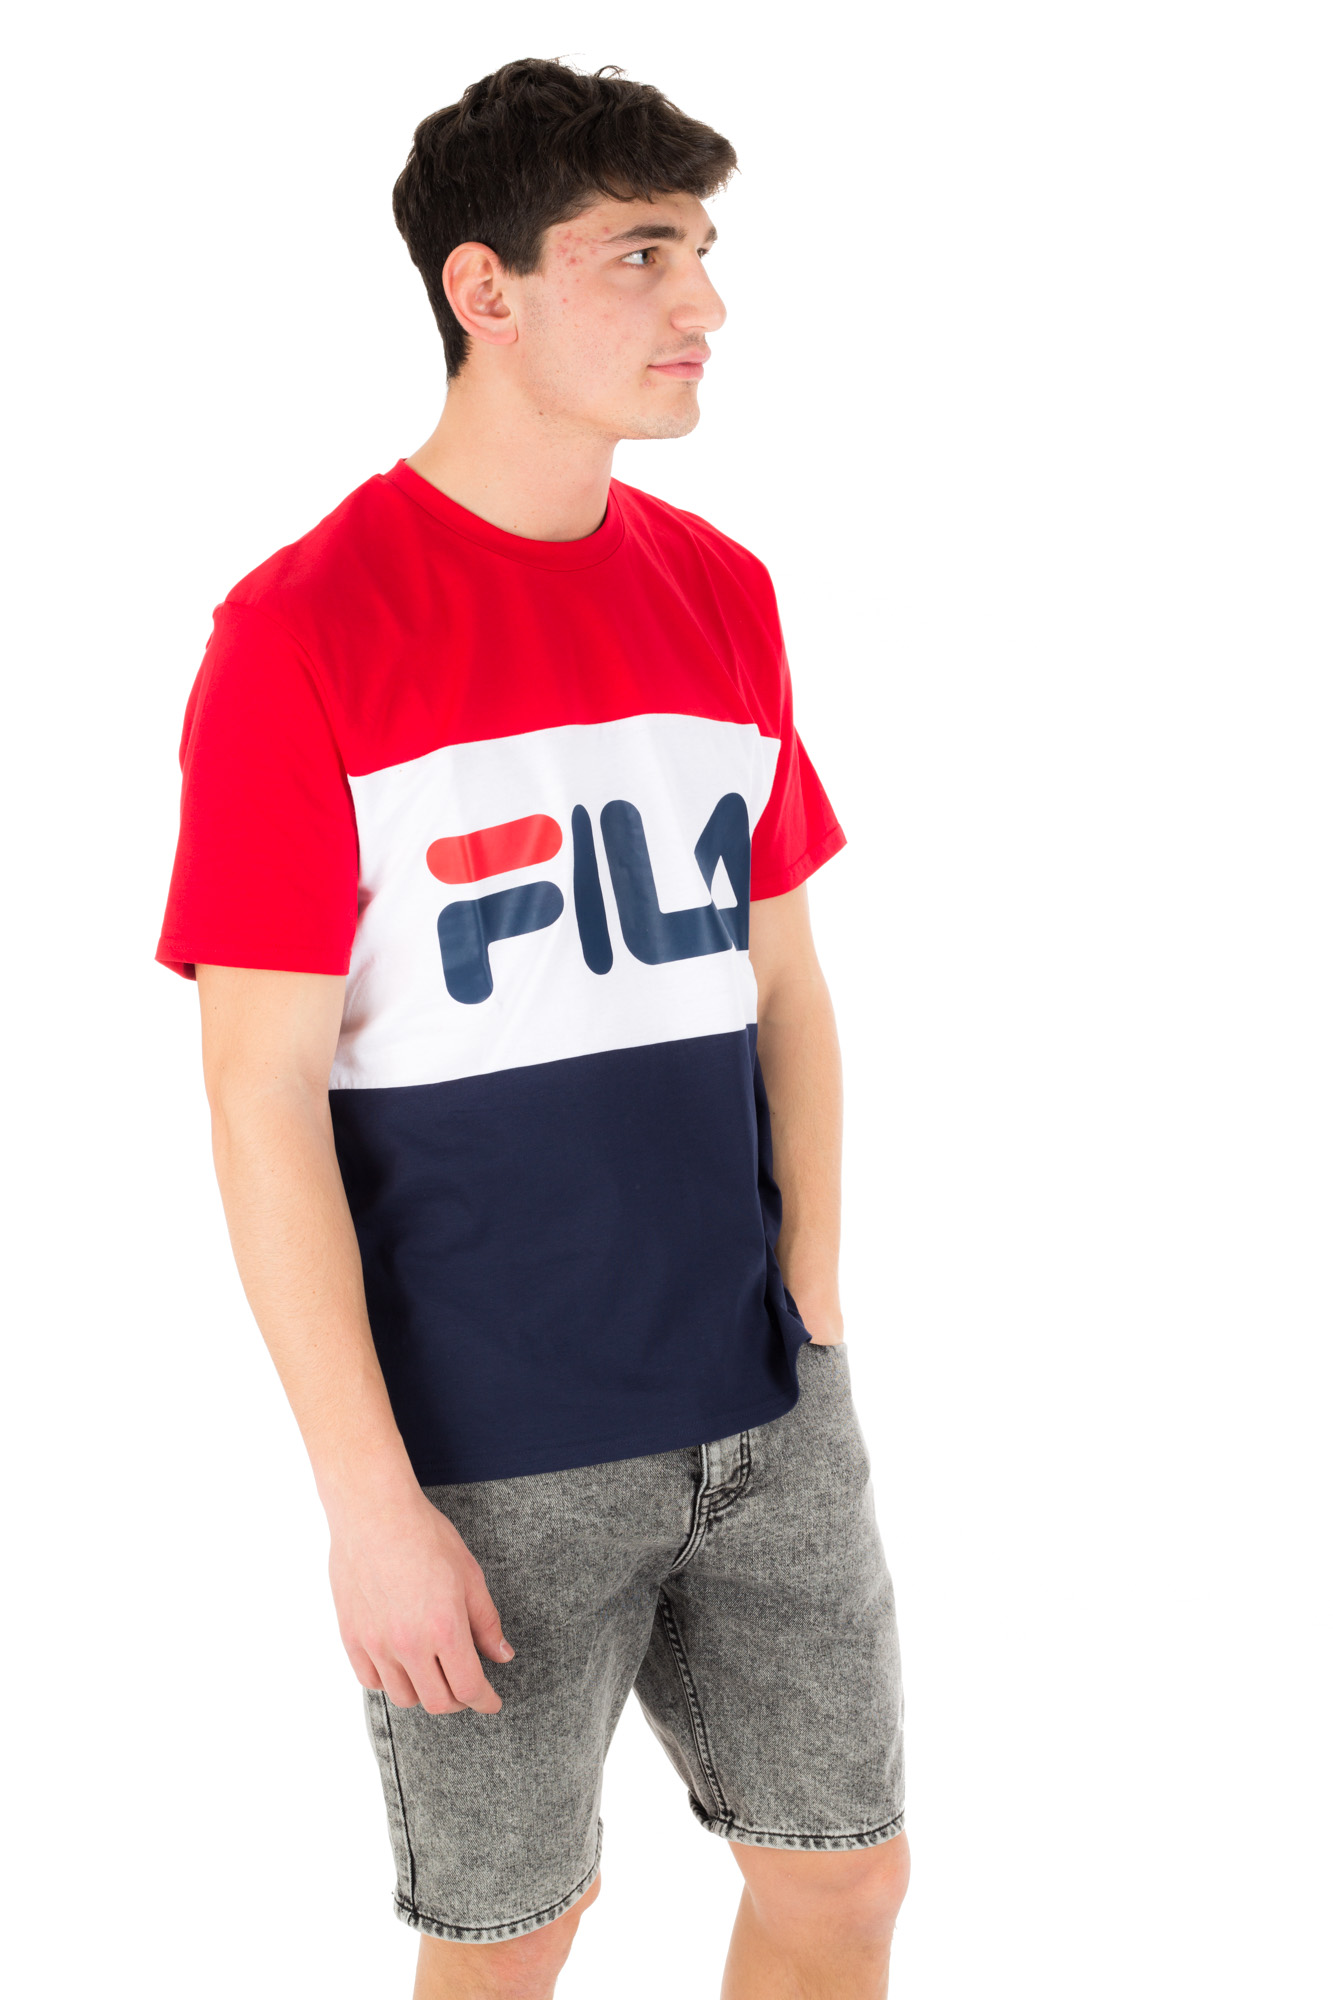 Fila - Unisex t-shirt with three color